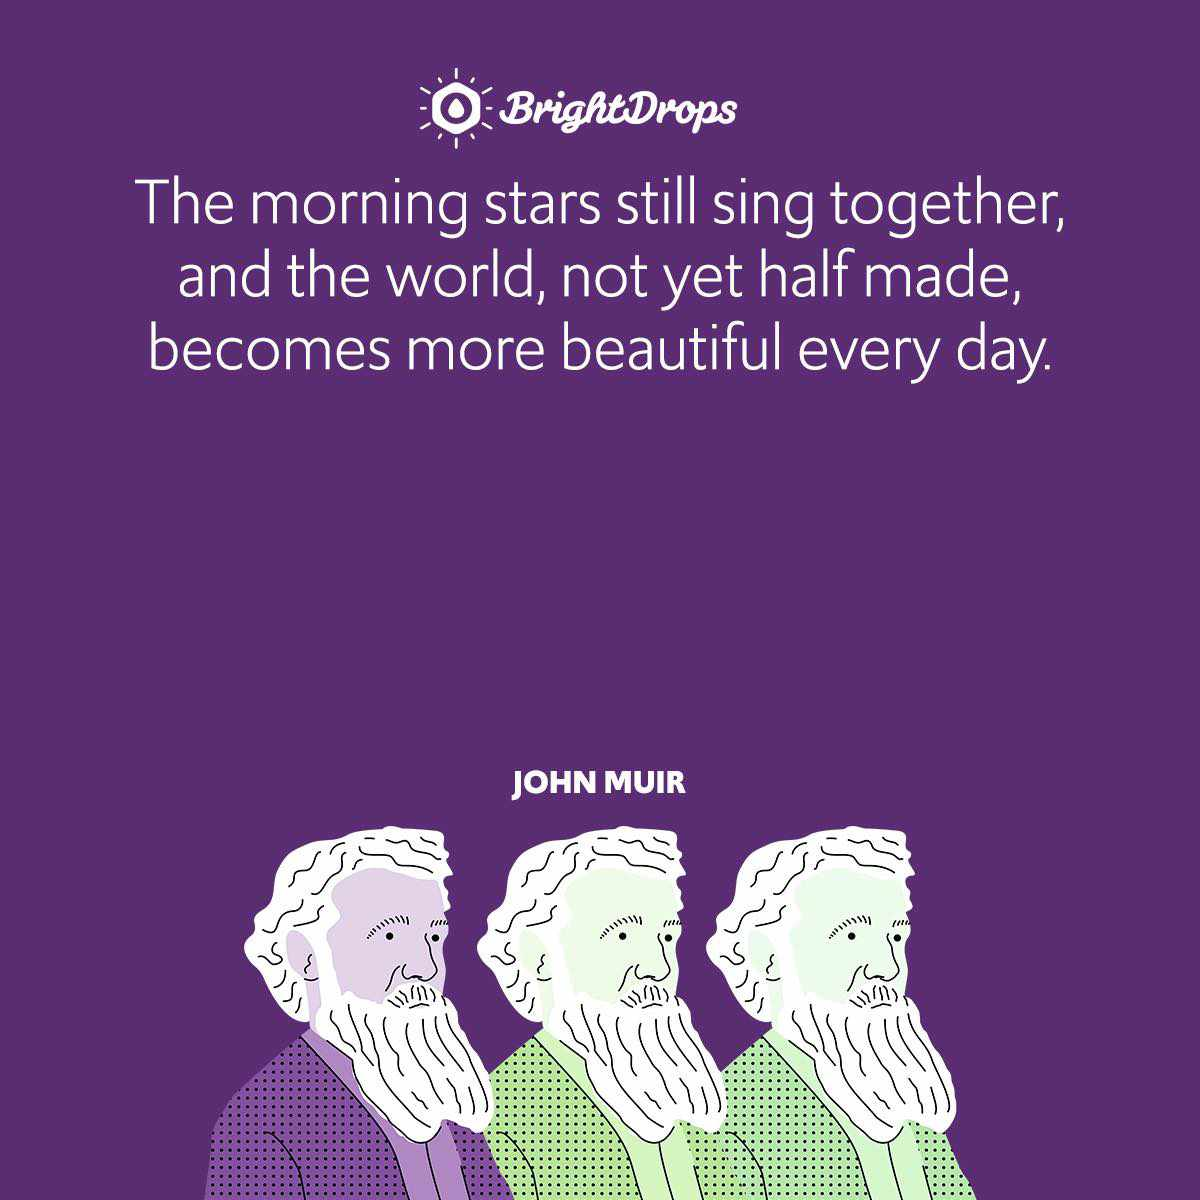 The morning stars still sing together, and the world, not yet half made, becomes more beautiful every day.